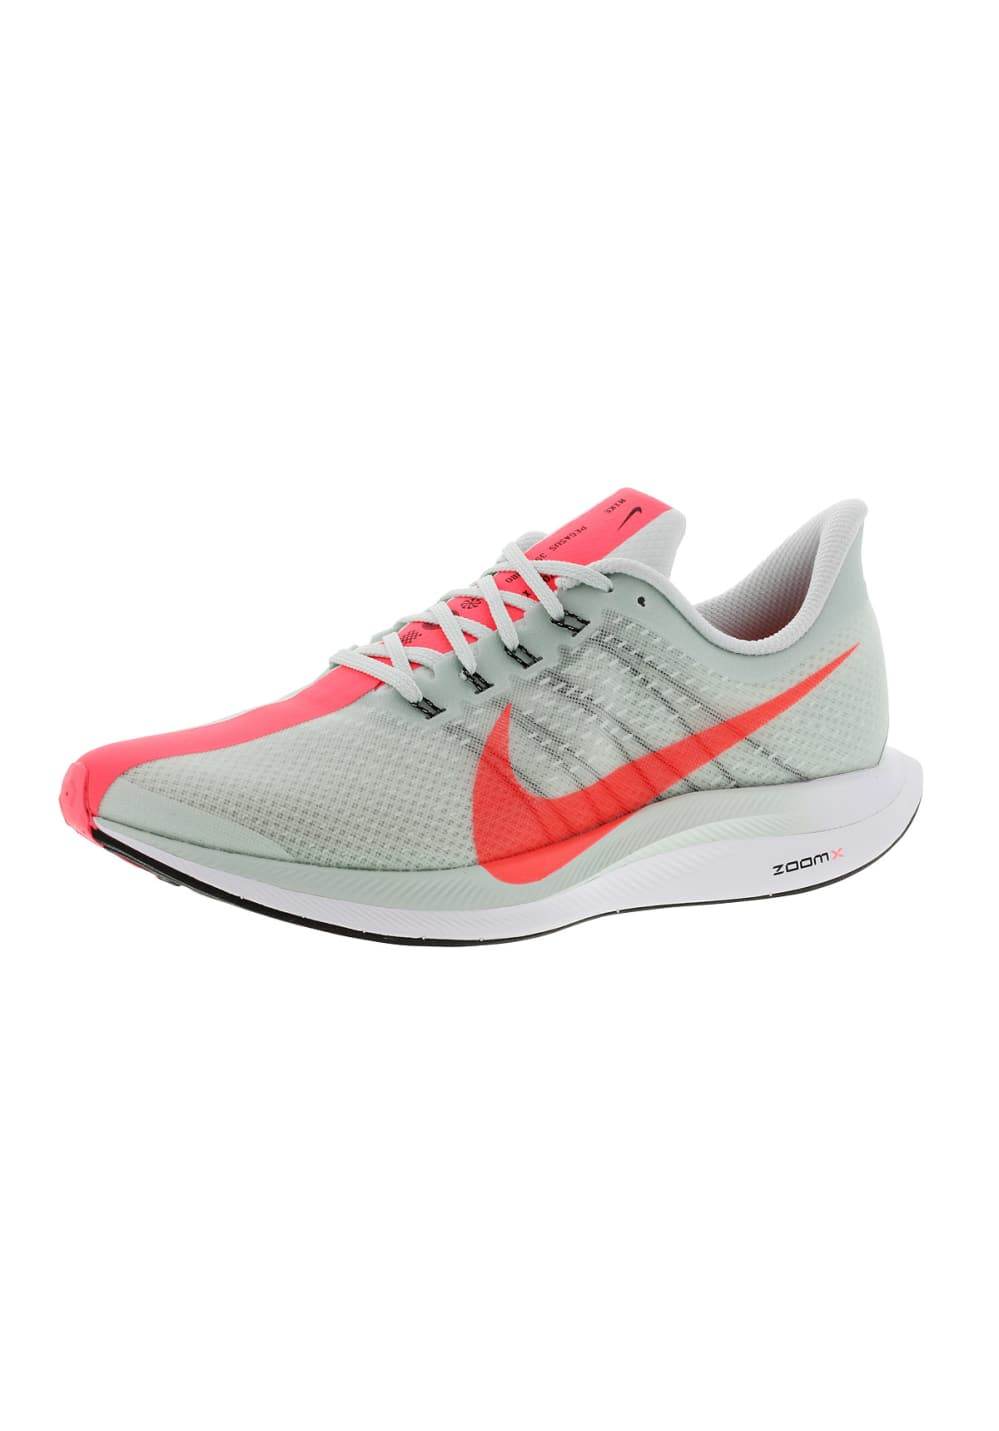 newest 590a0 50e02 Nike Zoom Pegasus Turbo - Running shoes for Men - Grey